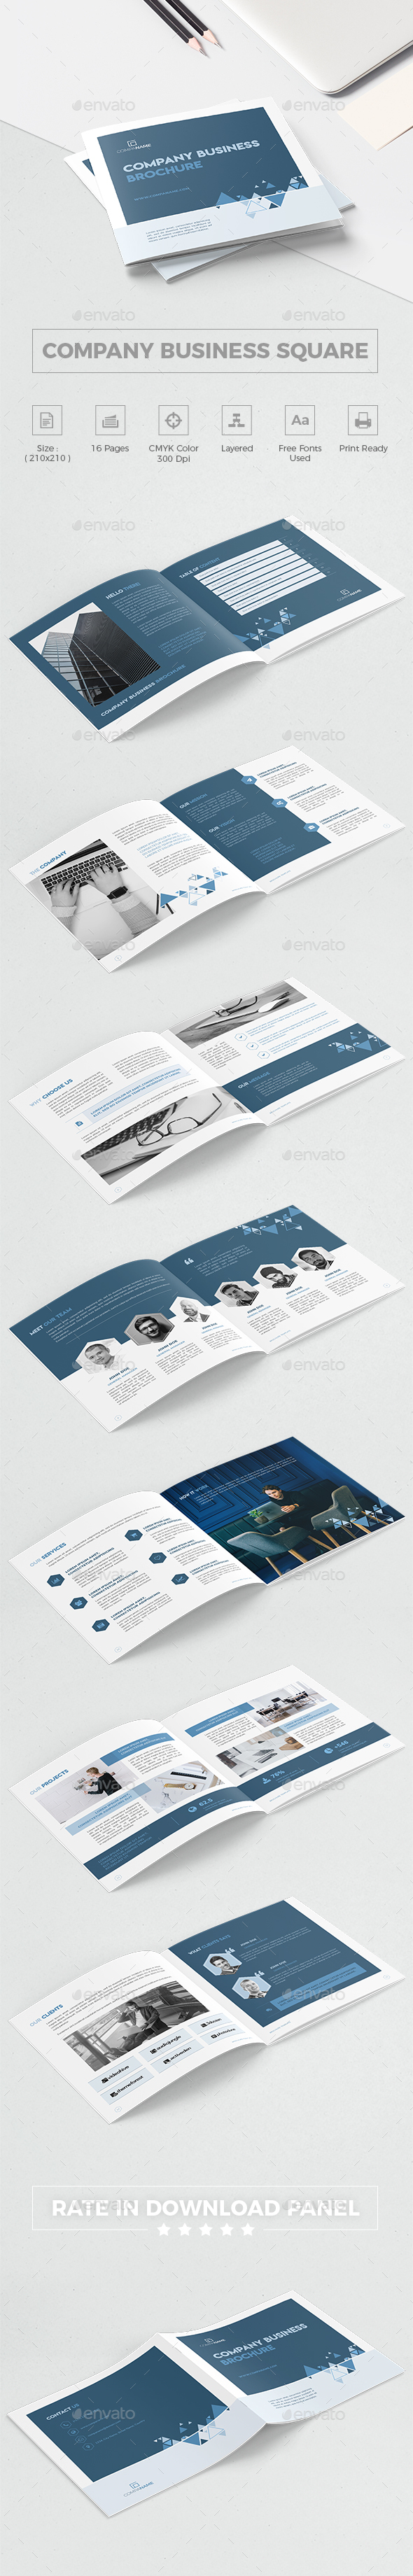 Company Business Square Brochure - Corporate Brochures